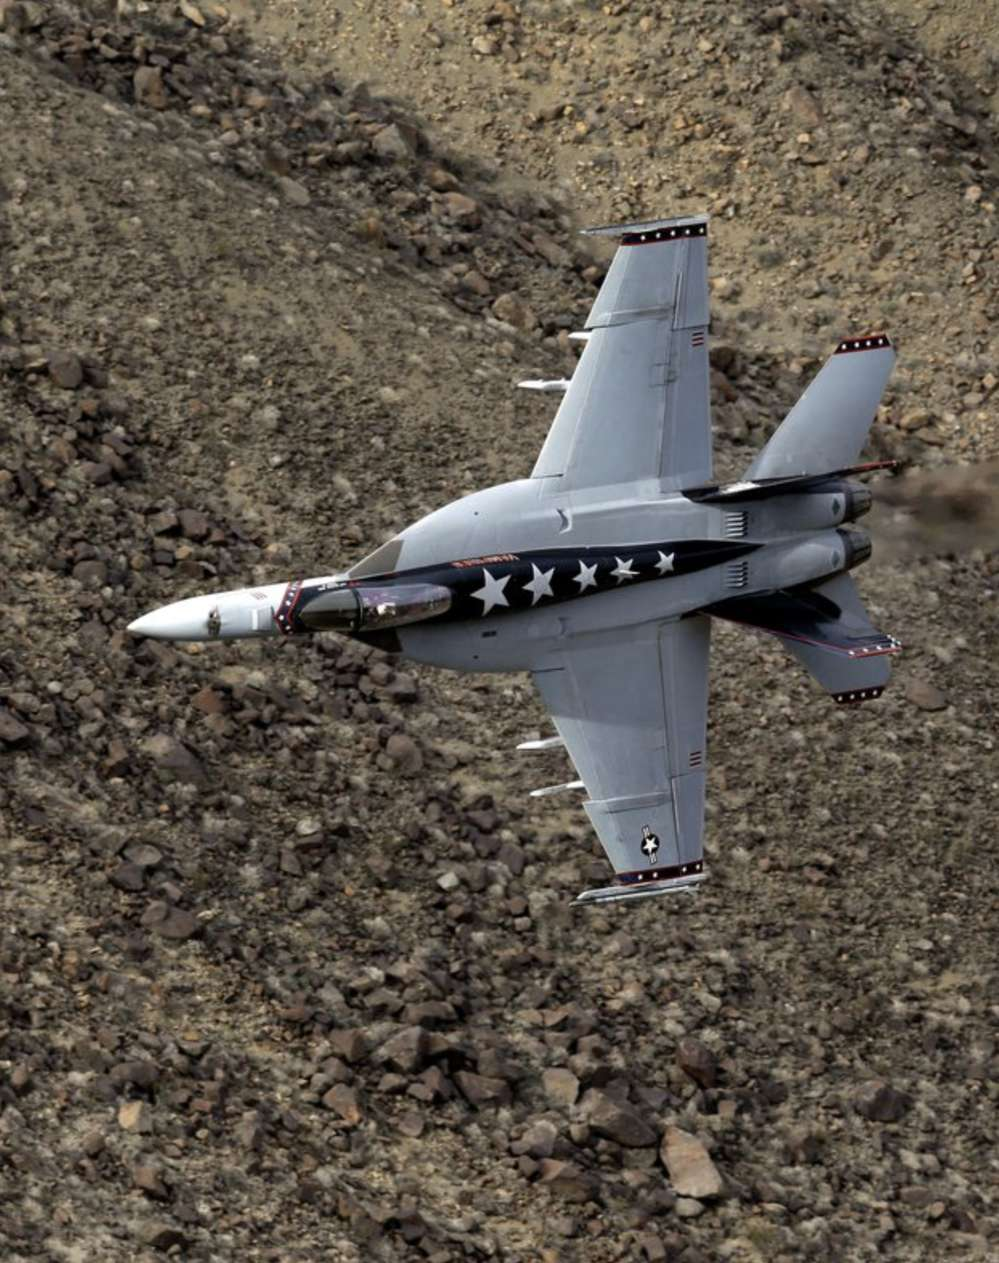 U.S. and foreign military pilots train in the canyon. (AP Photo/Ben Margot)